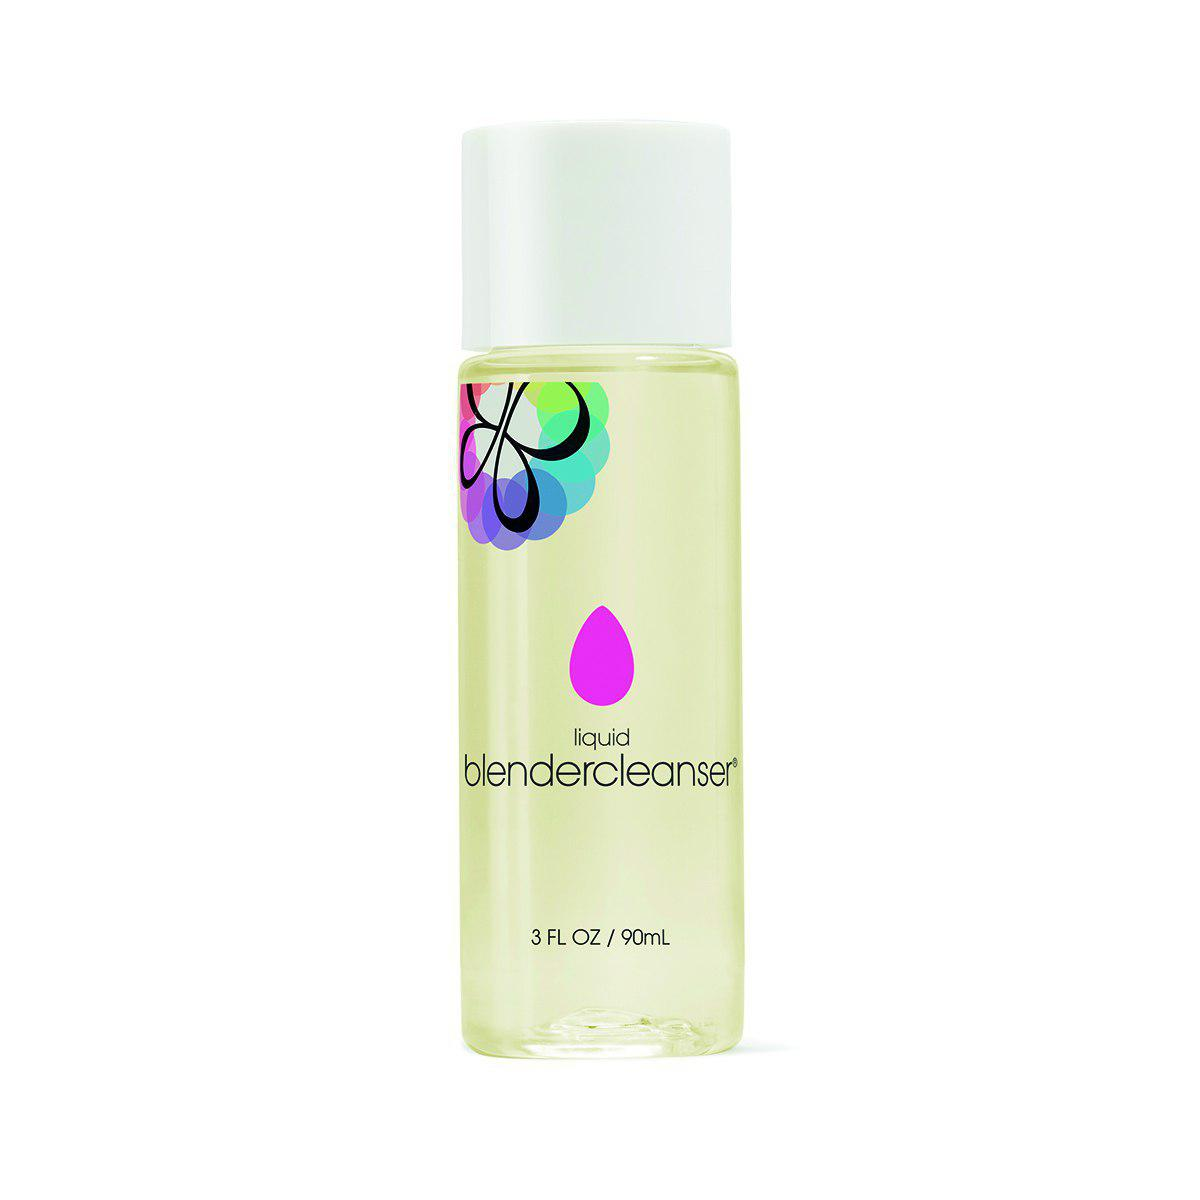 blendercleanser 90ml